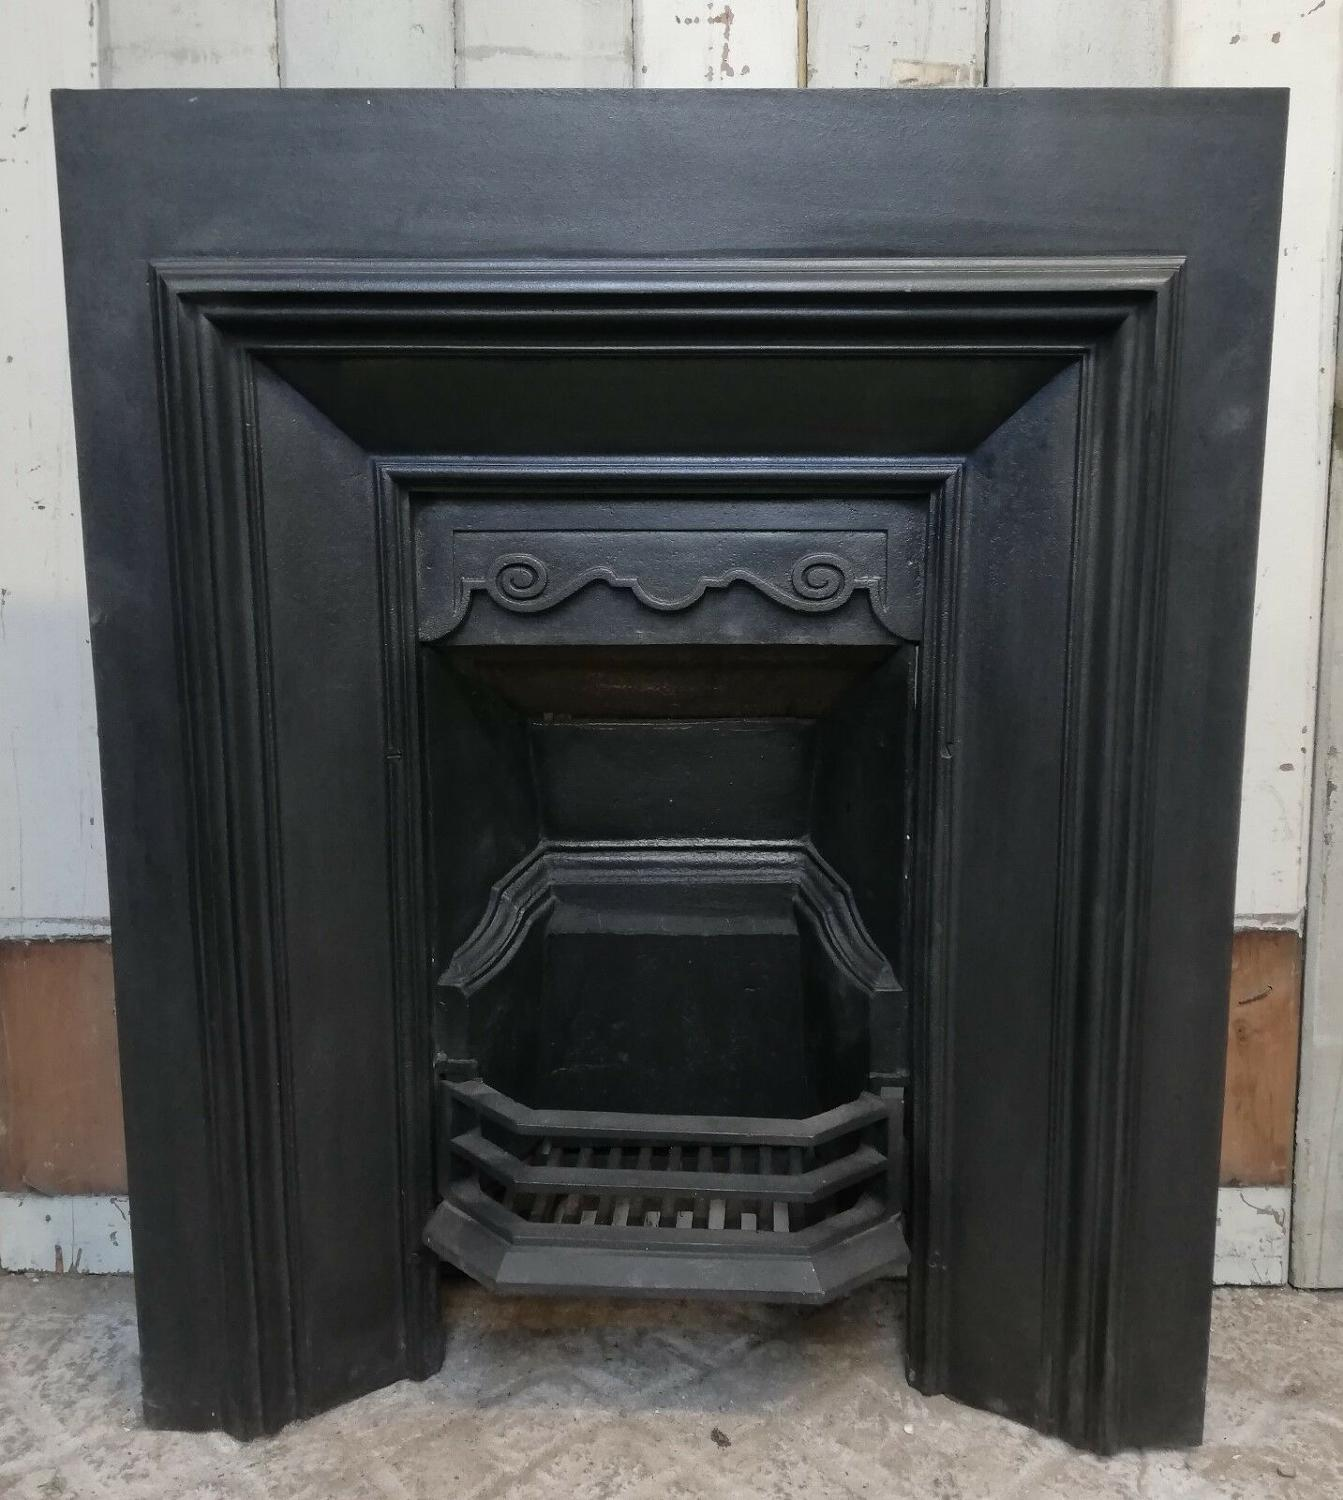 FI0025 AN ANTIQUE SQUARE SHAPED DECORATIVE CAST IRON FIRE INSERT